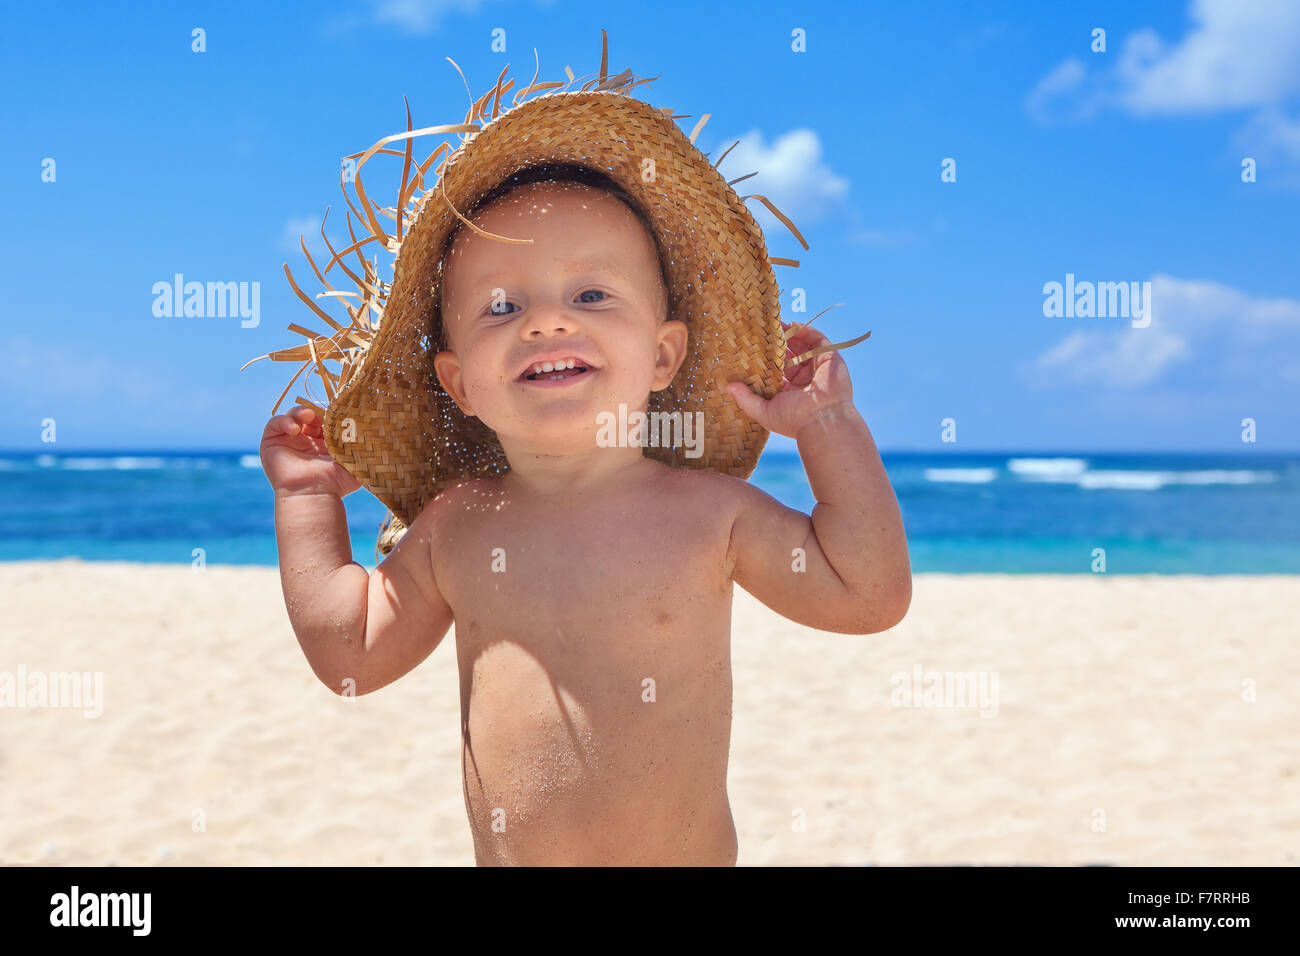 On sunny white sand beach muddy happy baby boy holds hat on head and has fun before swimming in sea waves. Stock Photo